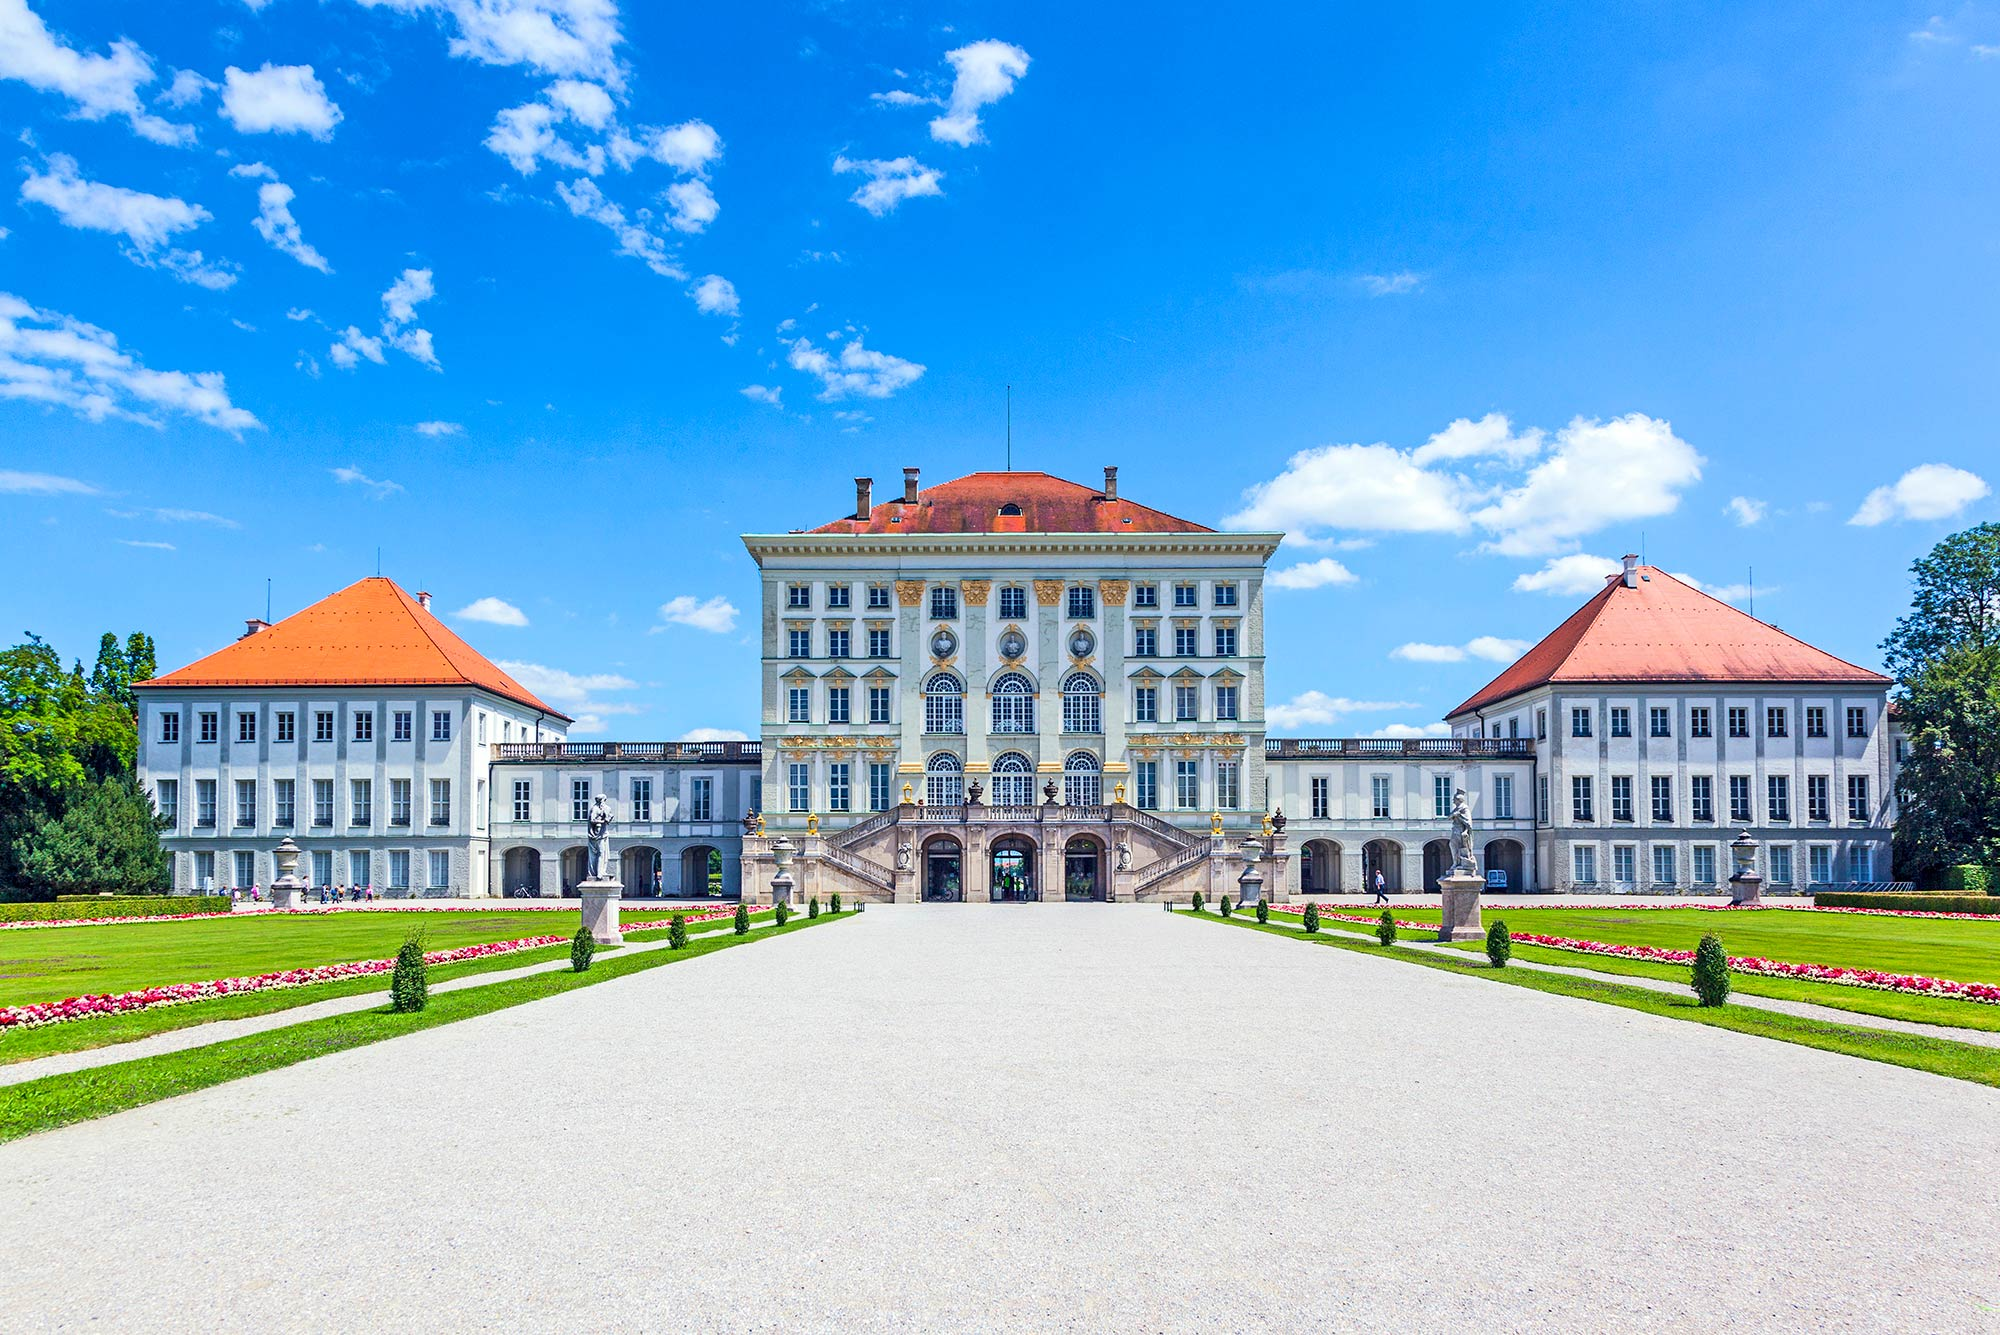 The beautiful Schloss Nymphenburg, where we will enjoy an exclusive private recital.